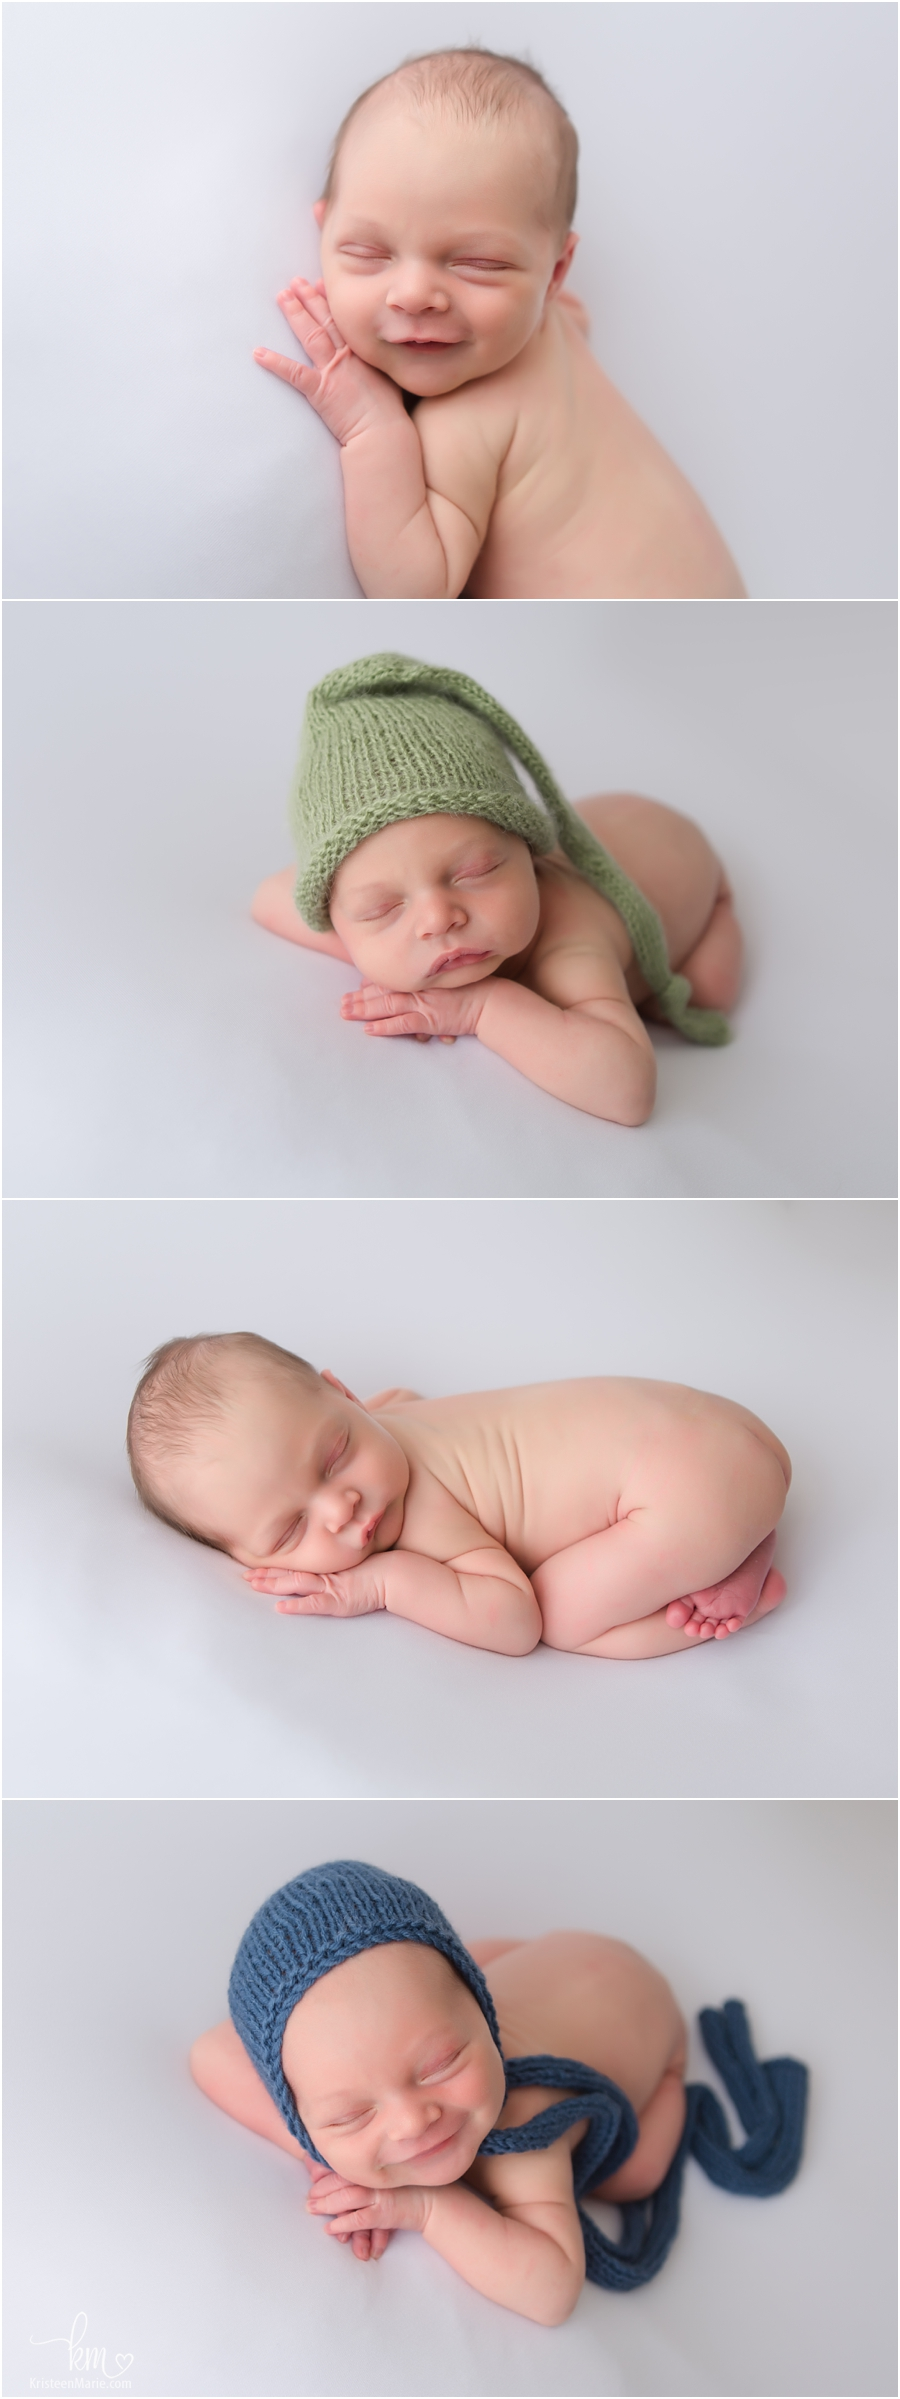 Newborn boy photography on white backdrop with accessories